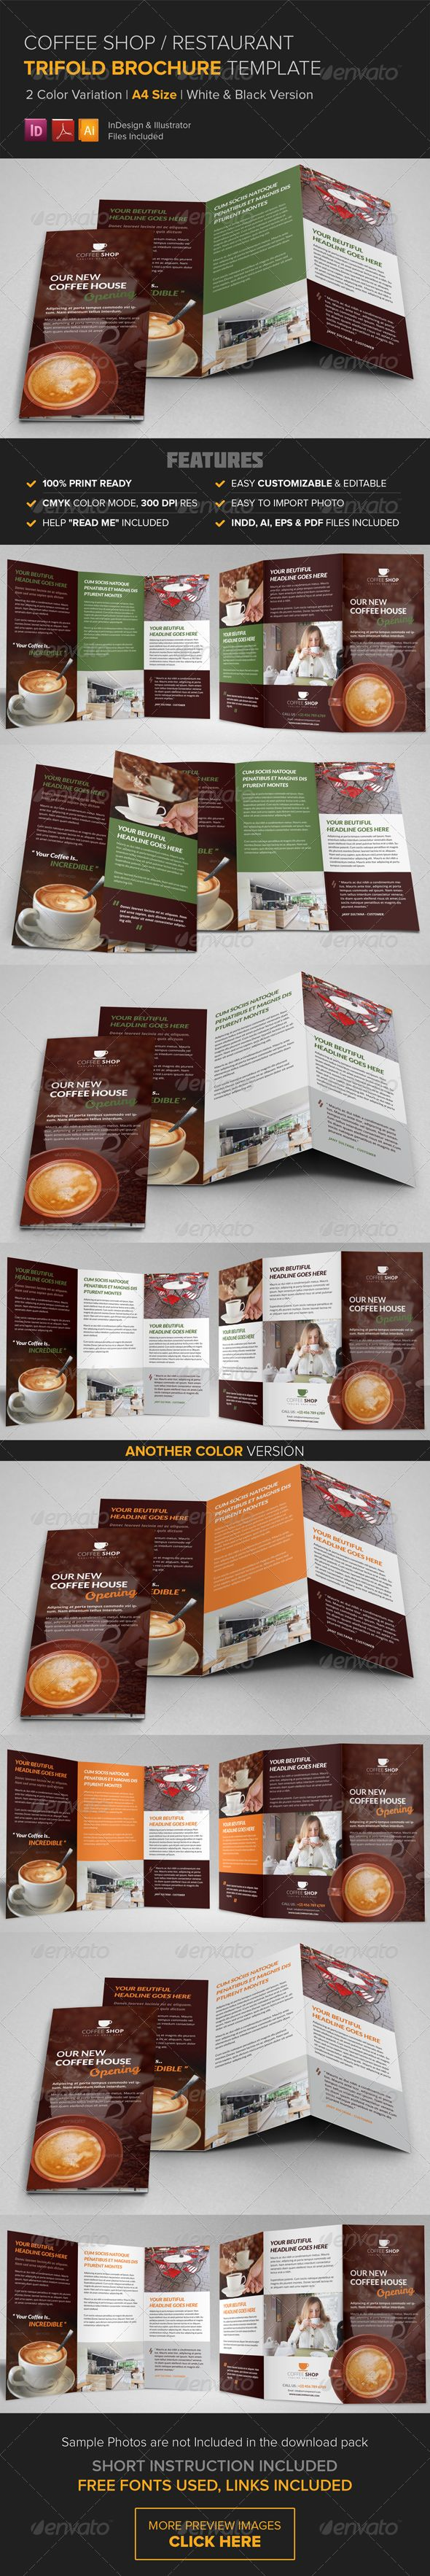 Coffee Shop Restaurant Trifold Brochure Template The